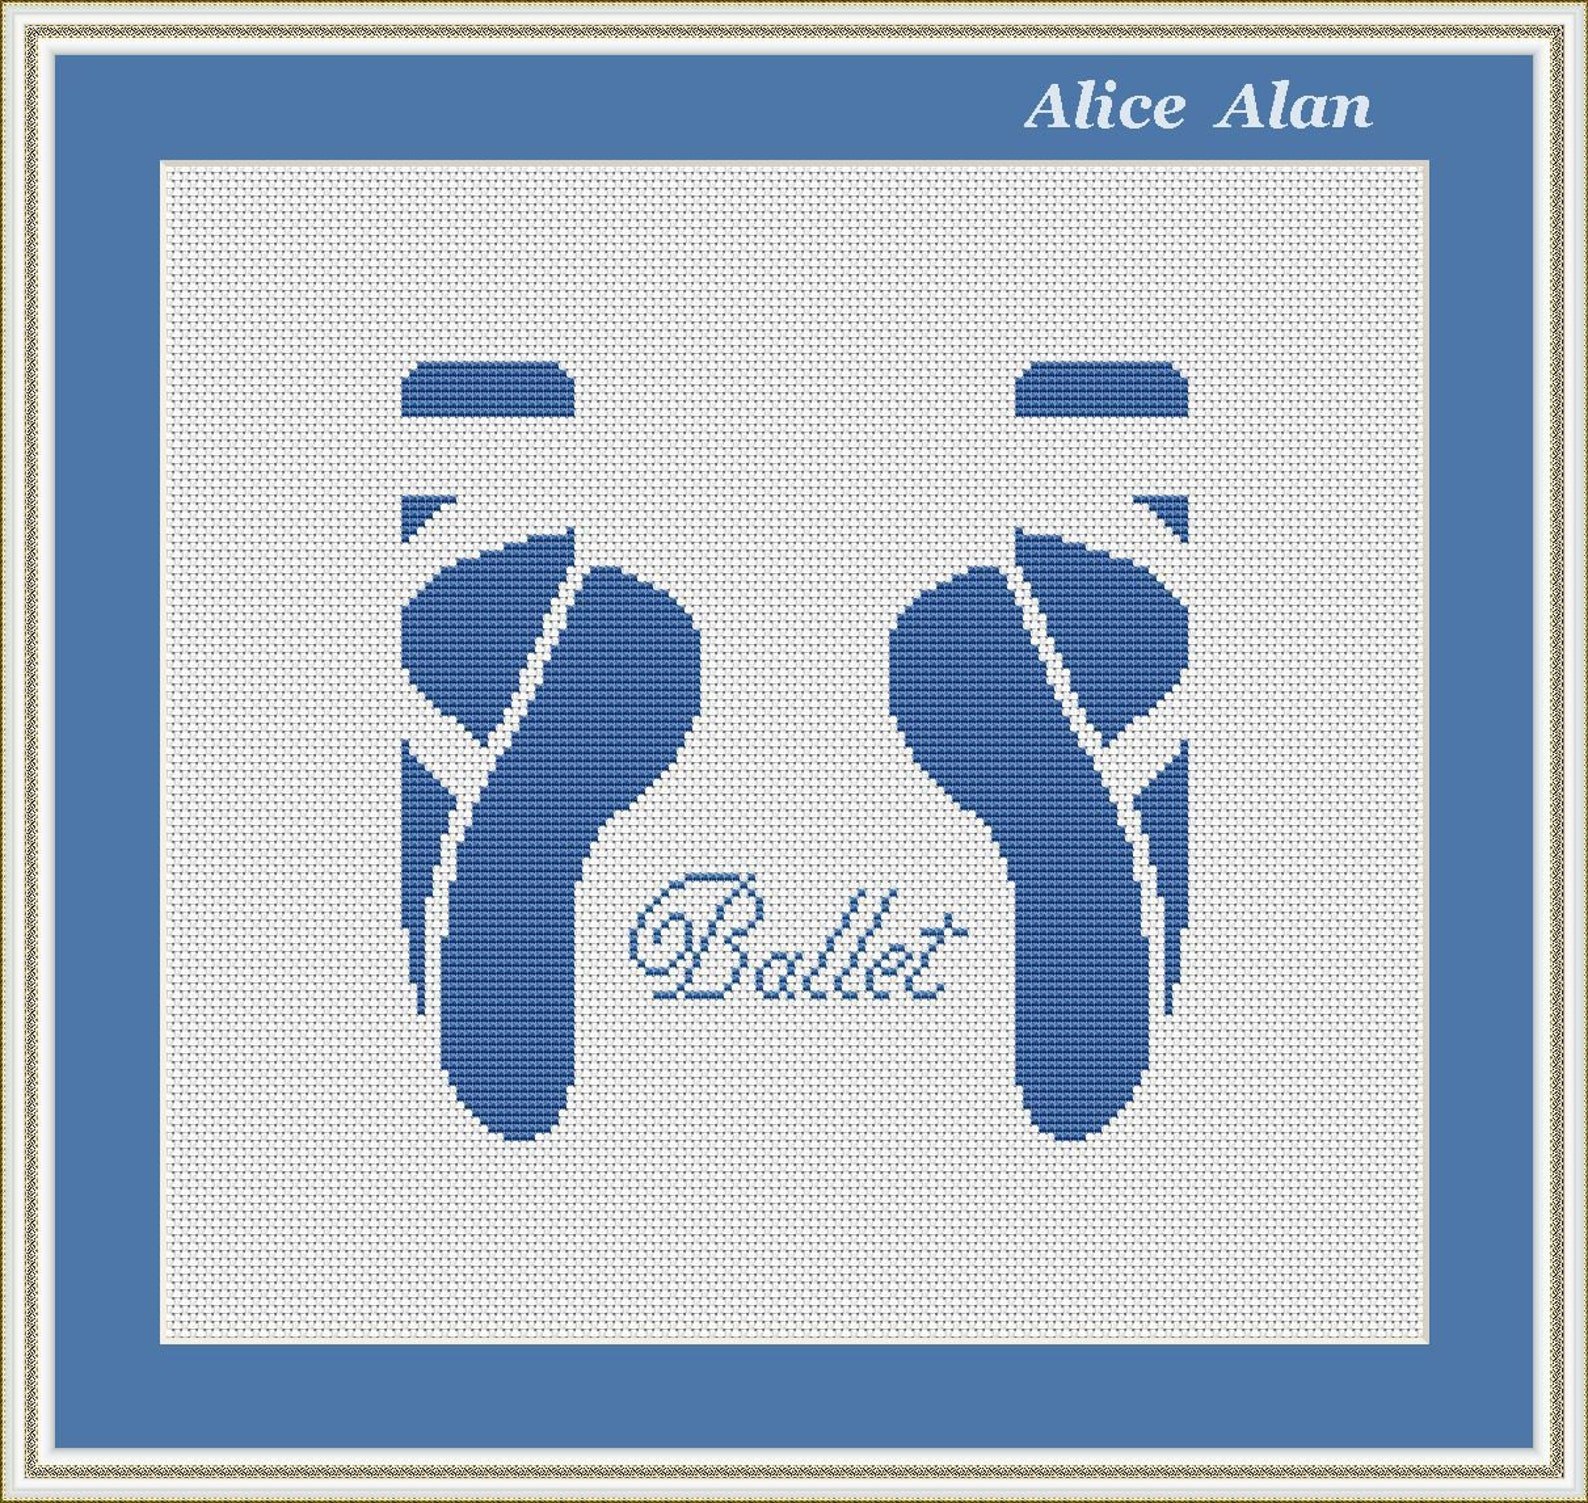 cross stitch pattern dance ballet ballerina vintage blue shoes pointe counted cross stitch pattern/instant download epattern pdf